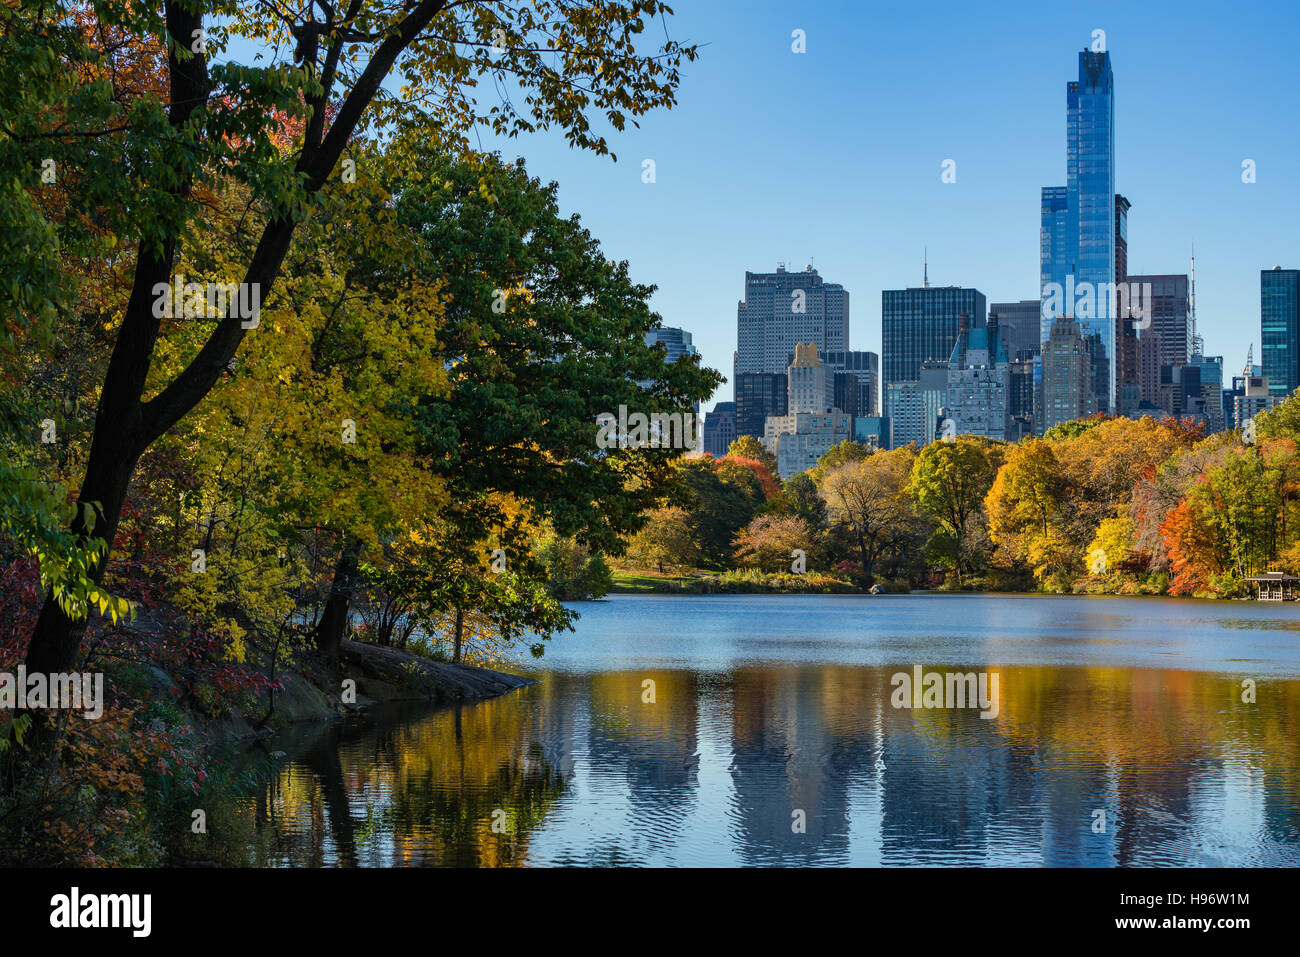 Autumn in Central Park at The Lake with Midtown skyscrapers. Cityscape sunrise view, Manhattan, New York City - Stock Image